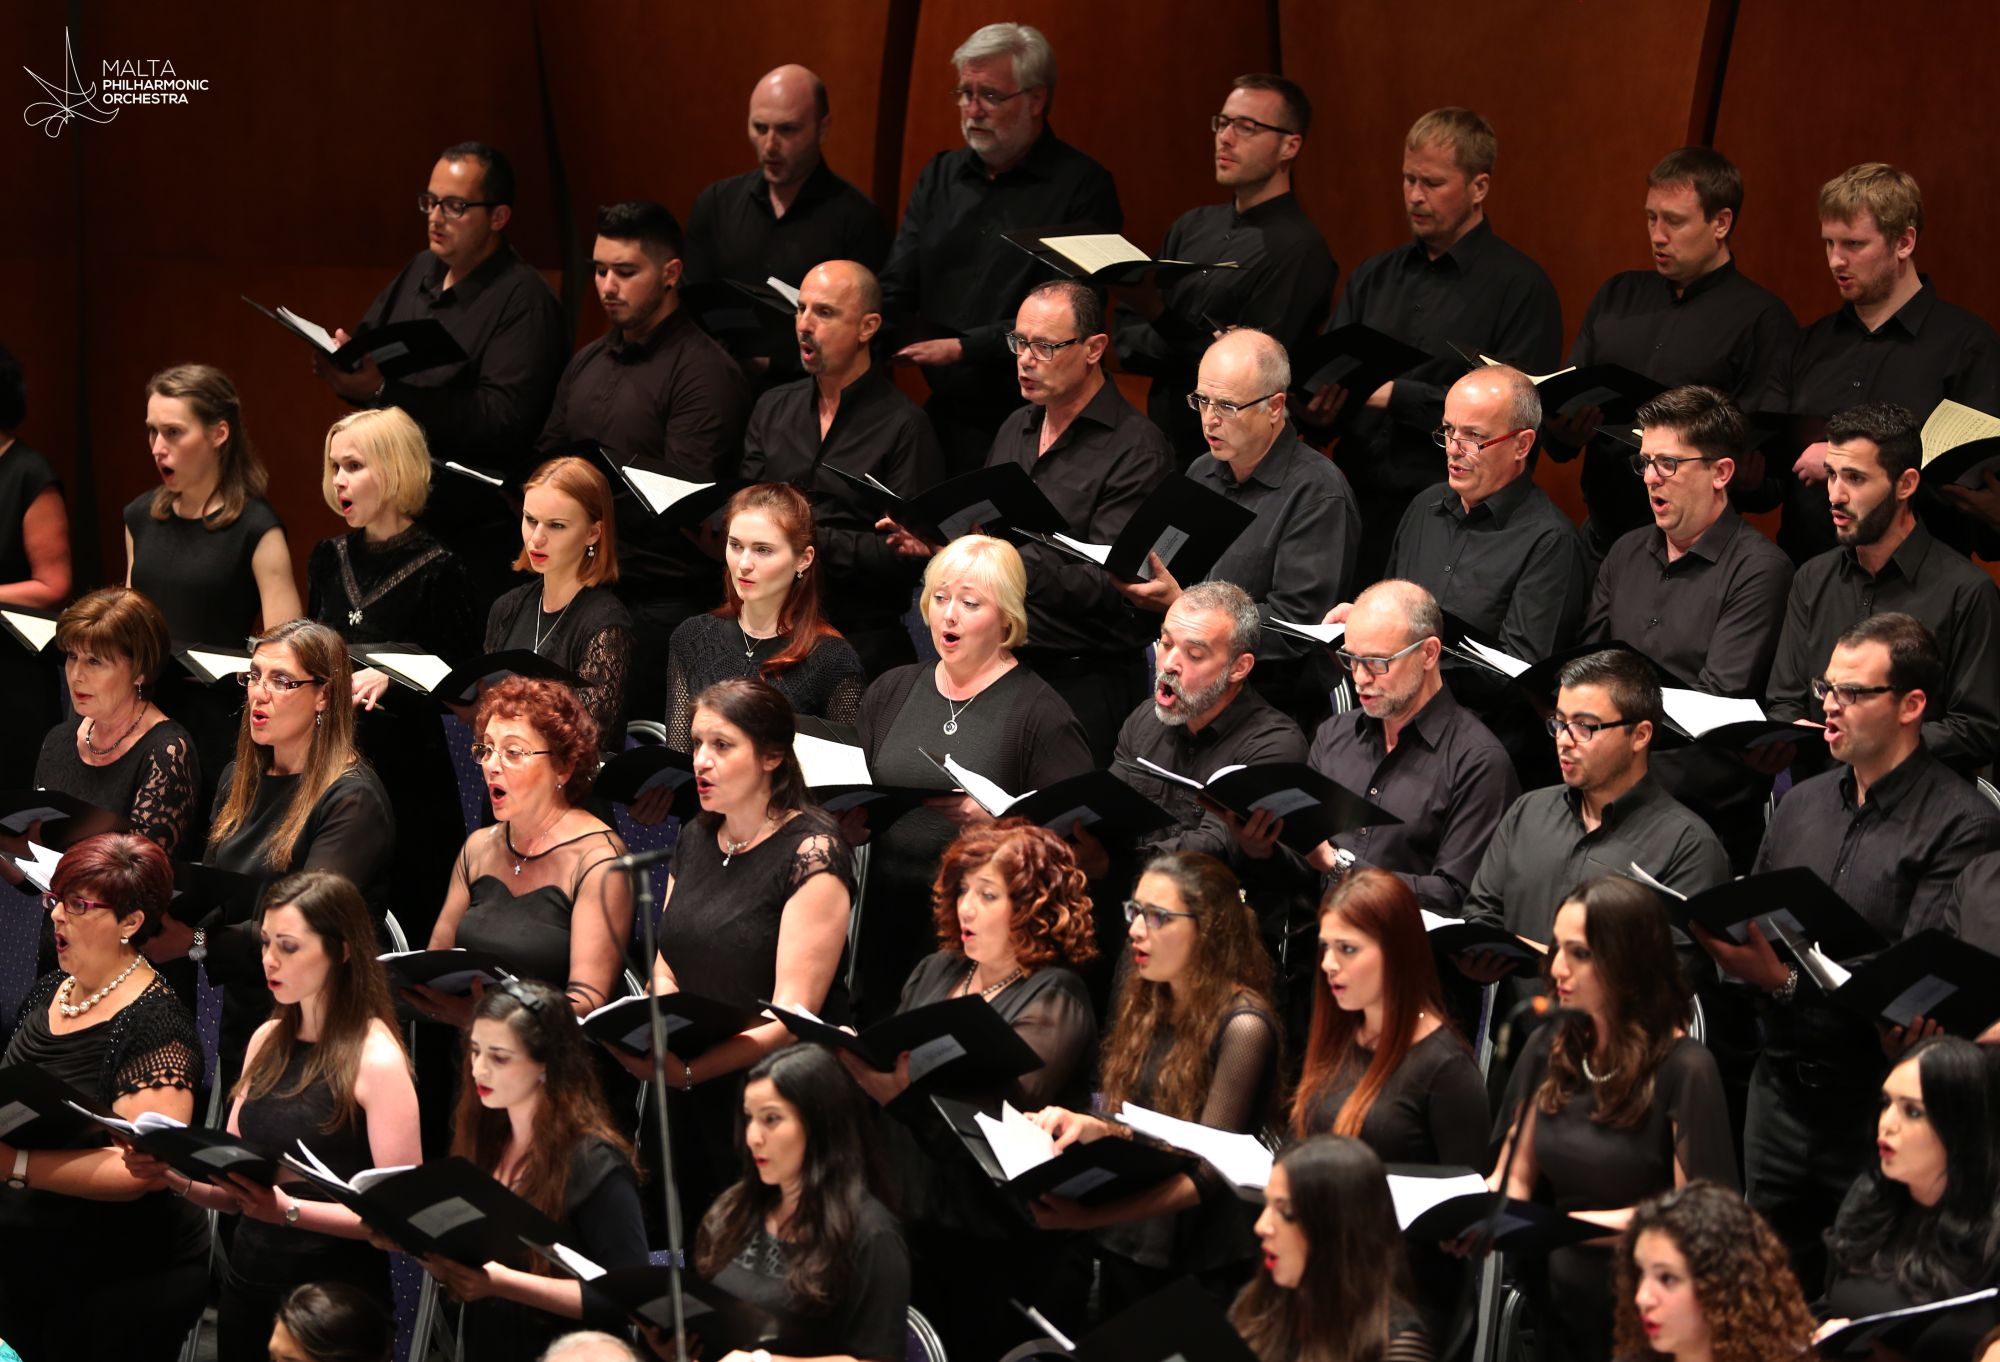 Motets and Madrigals - from Sacred to Profane (Launch of KorMalta)